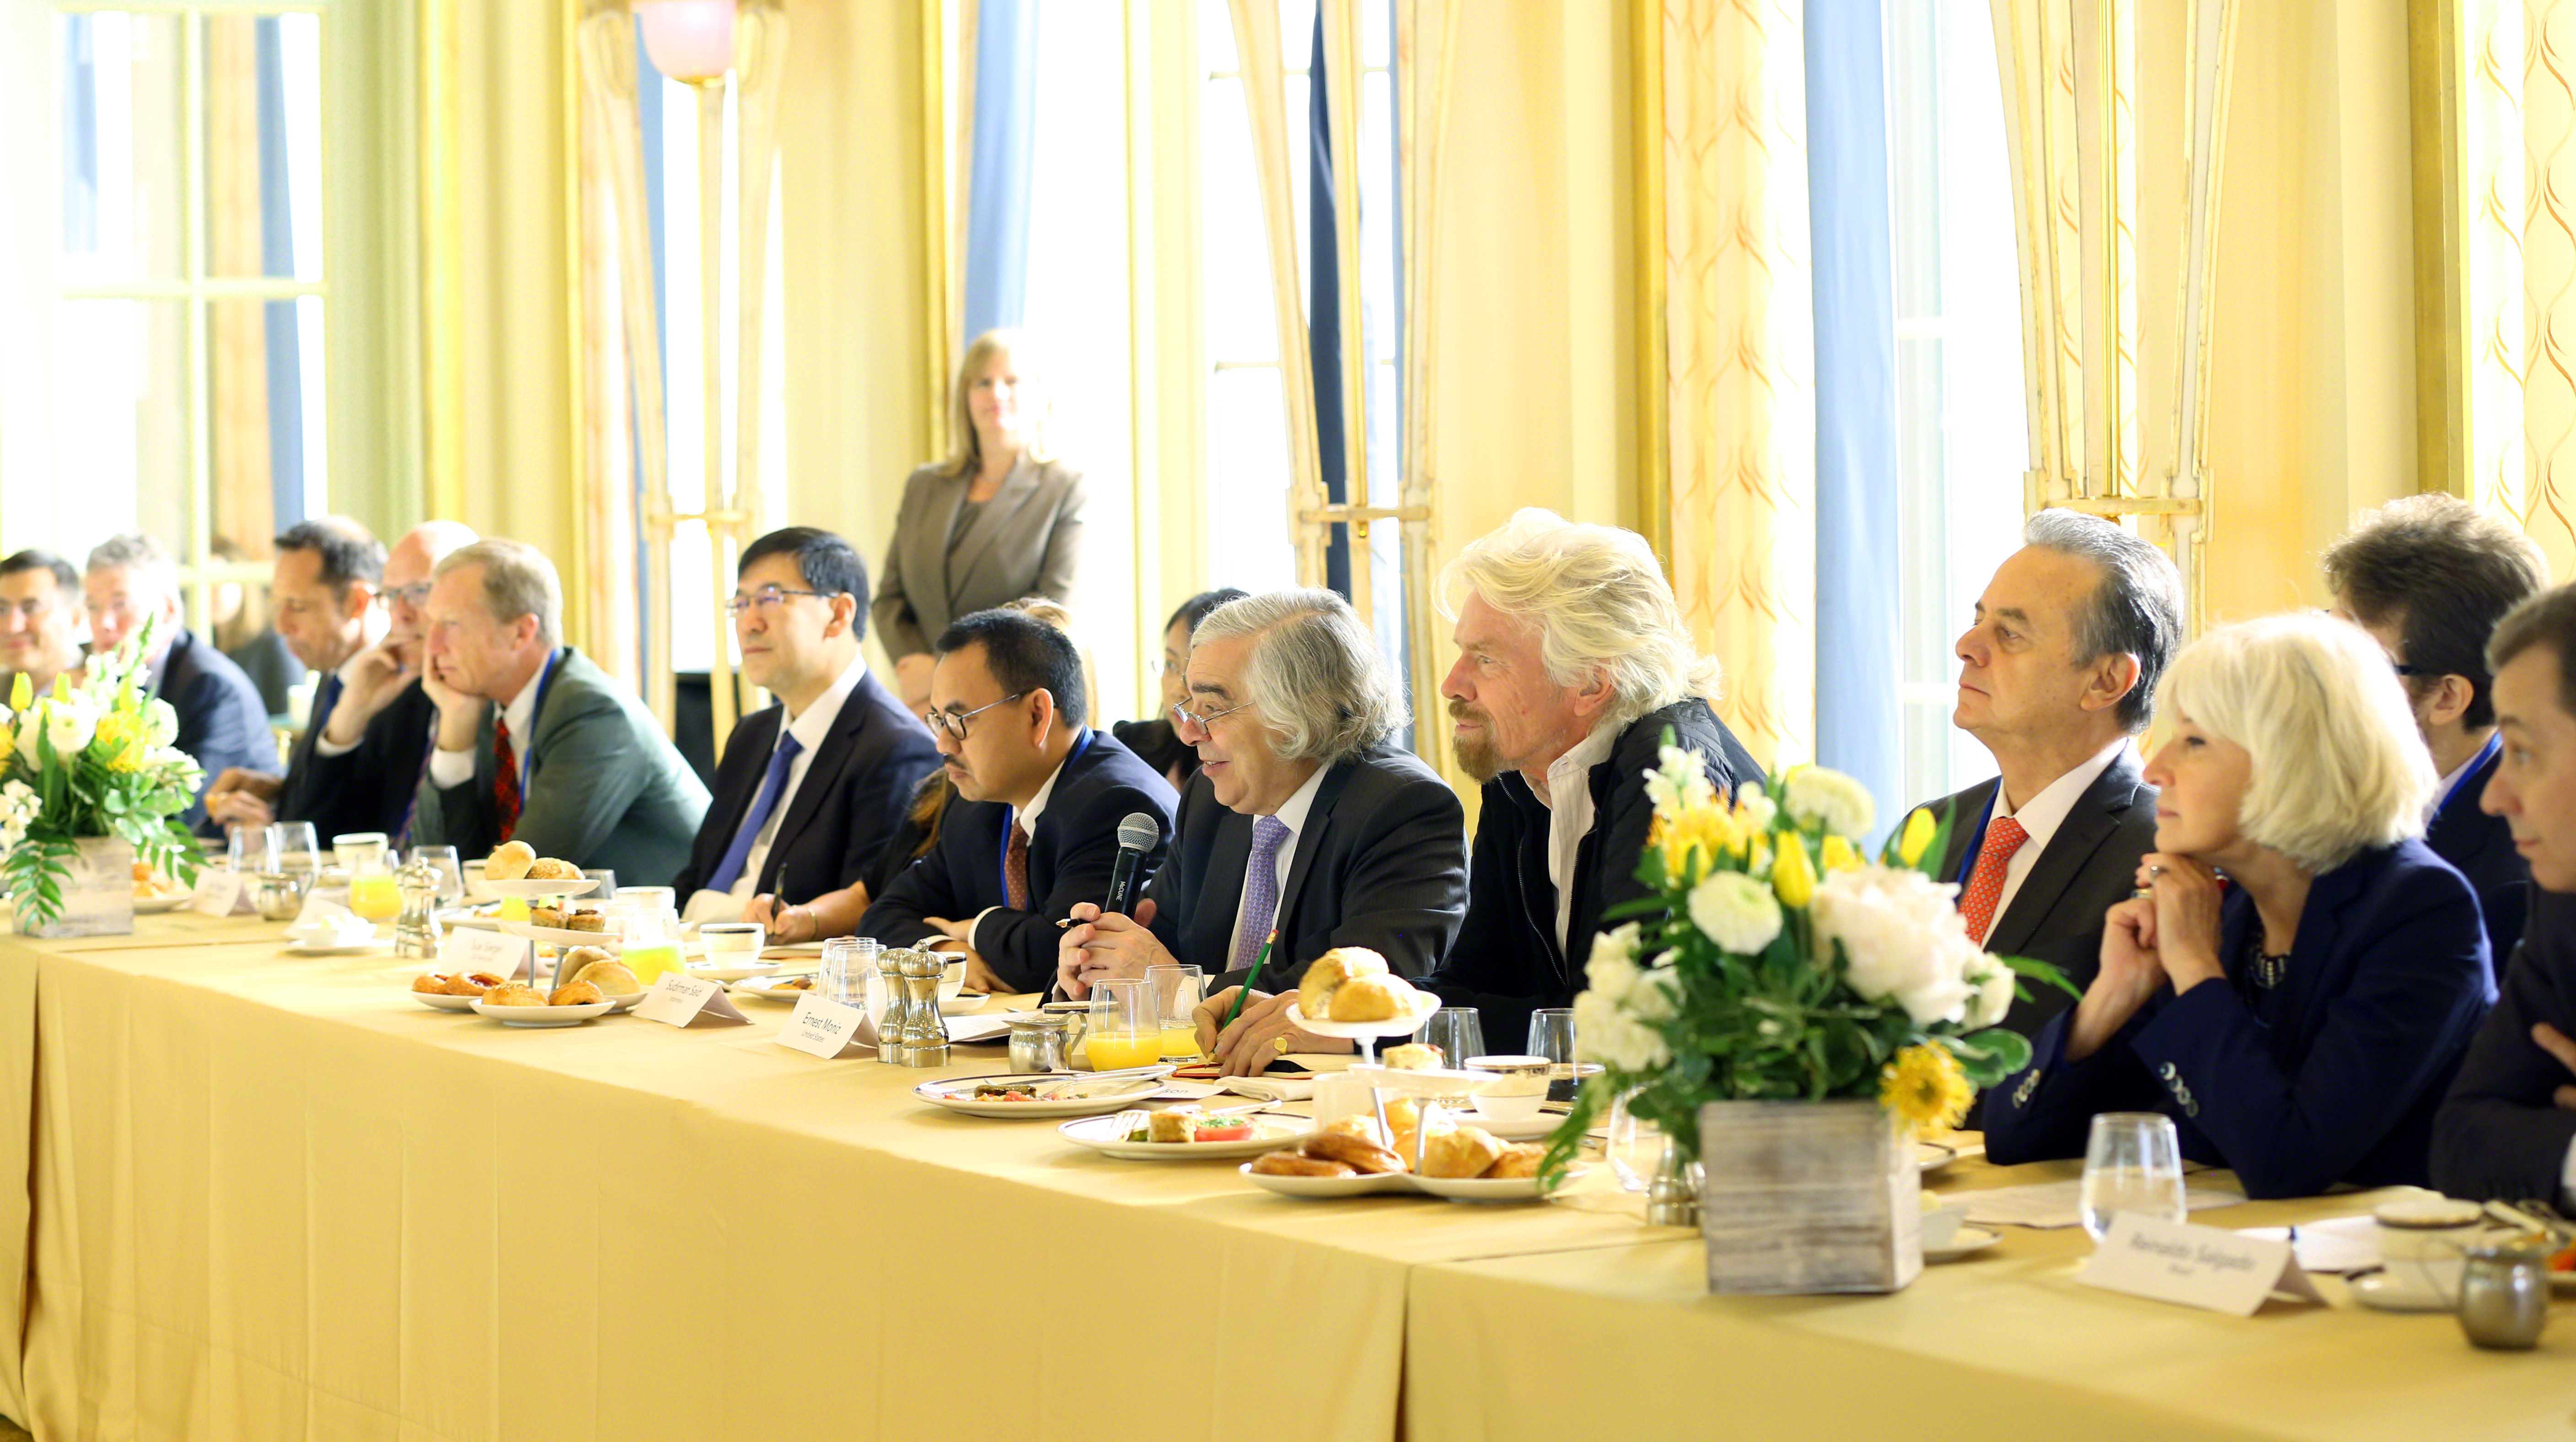 Richard Branson at Mission Innovation clean energy breakfast